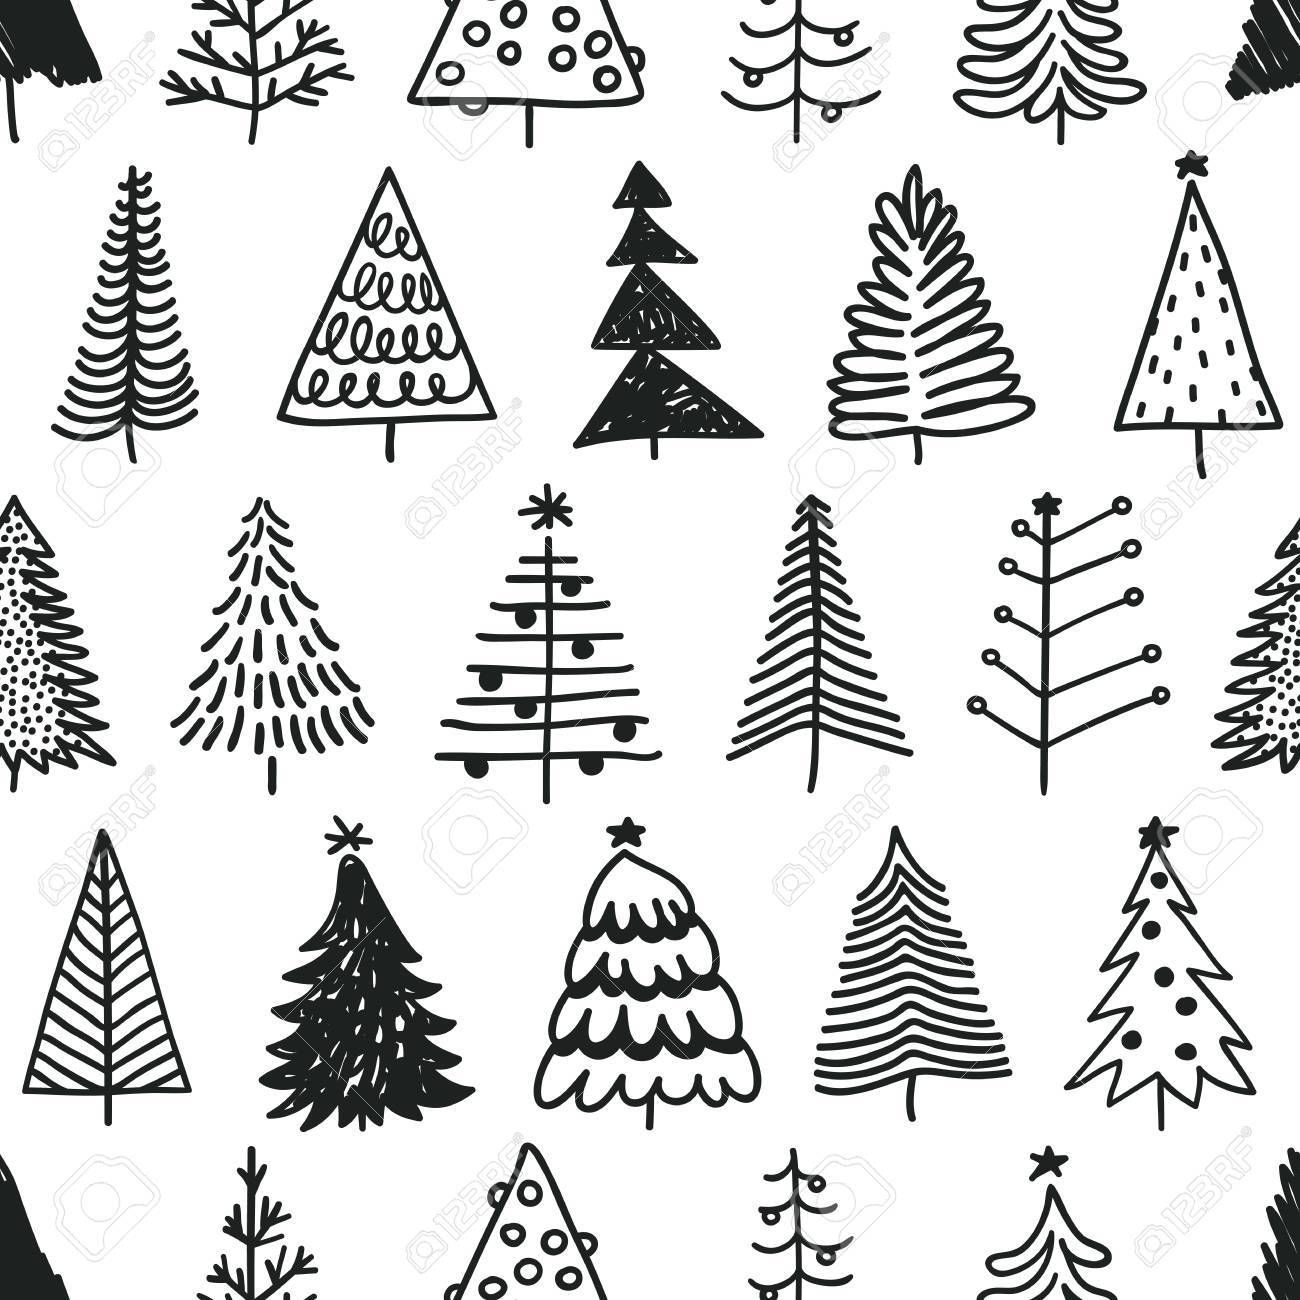 Christmas Illustration In 2020 Christmas Tree Drawing Tree Doodle Christmas Doodles